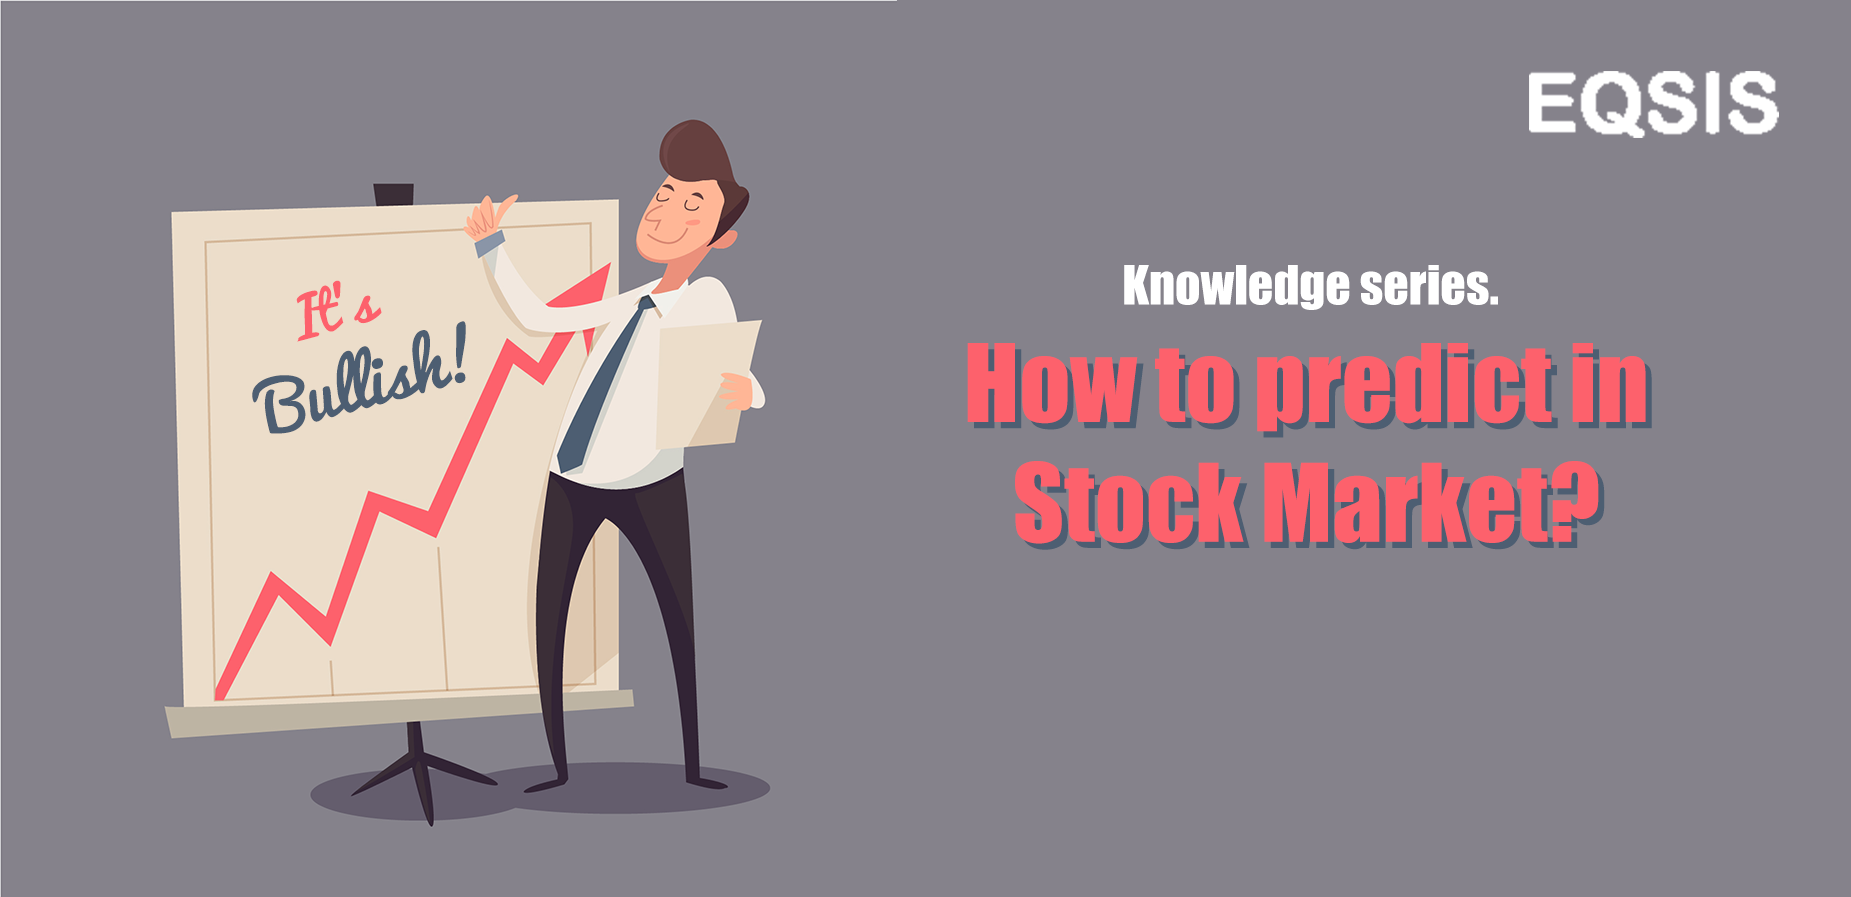 How To Predict In Stock Market?